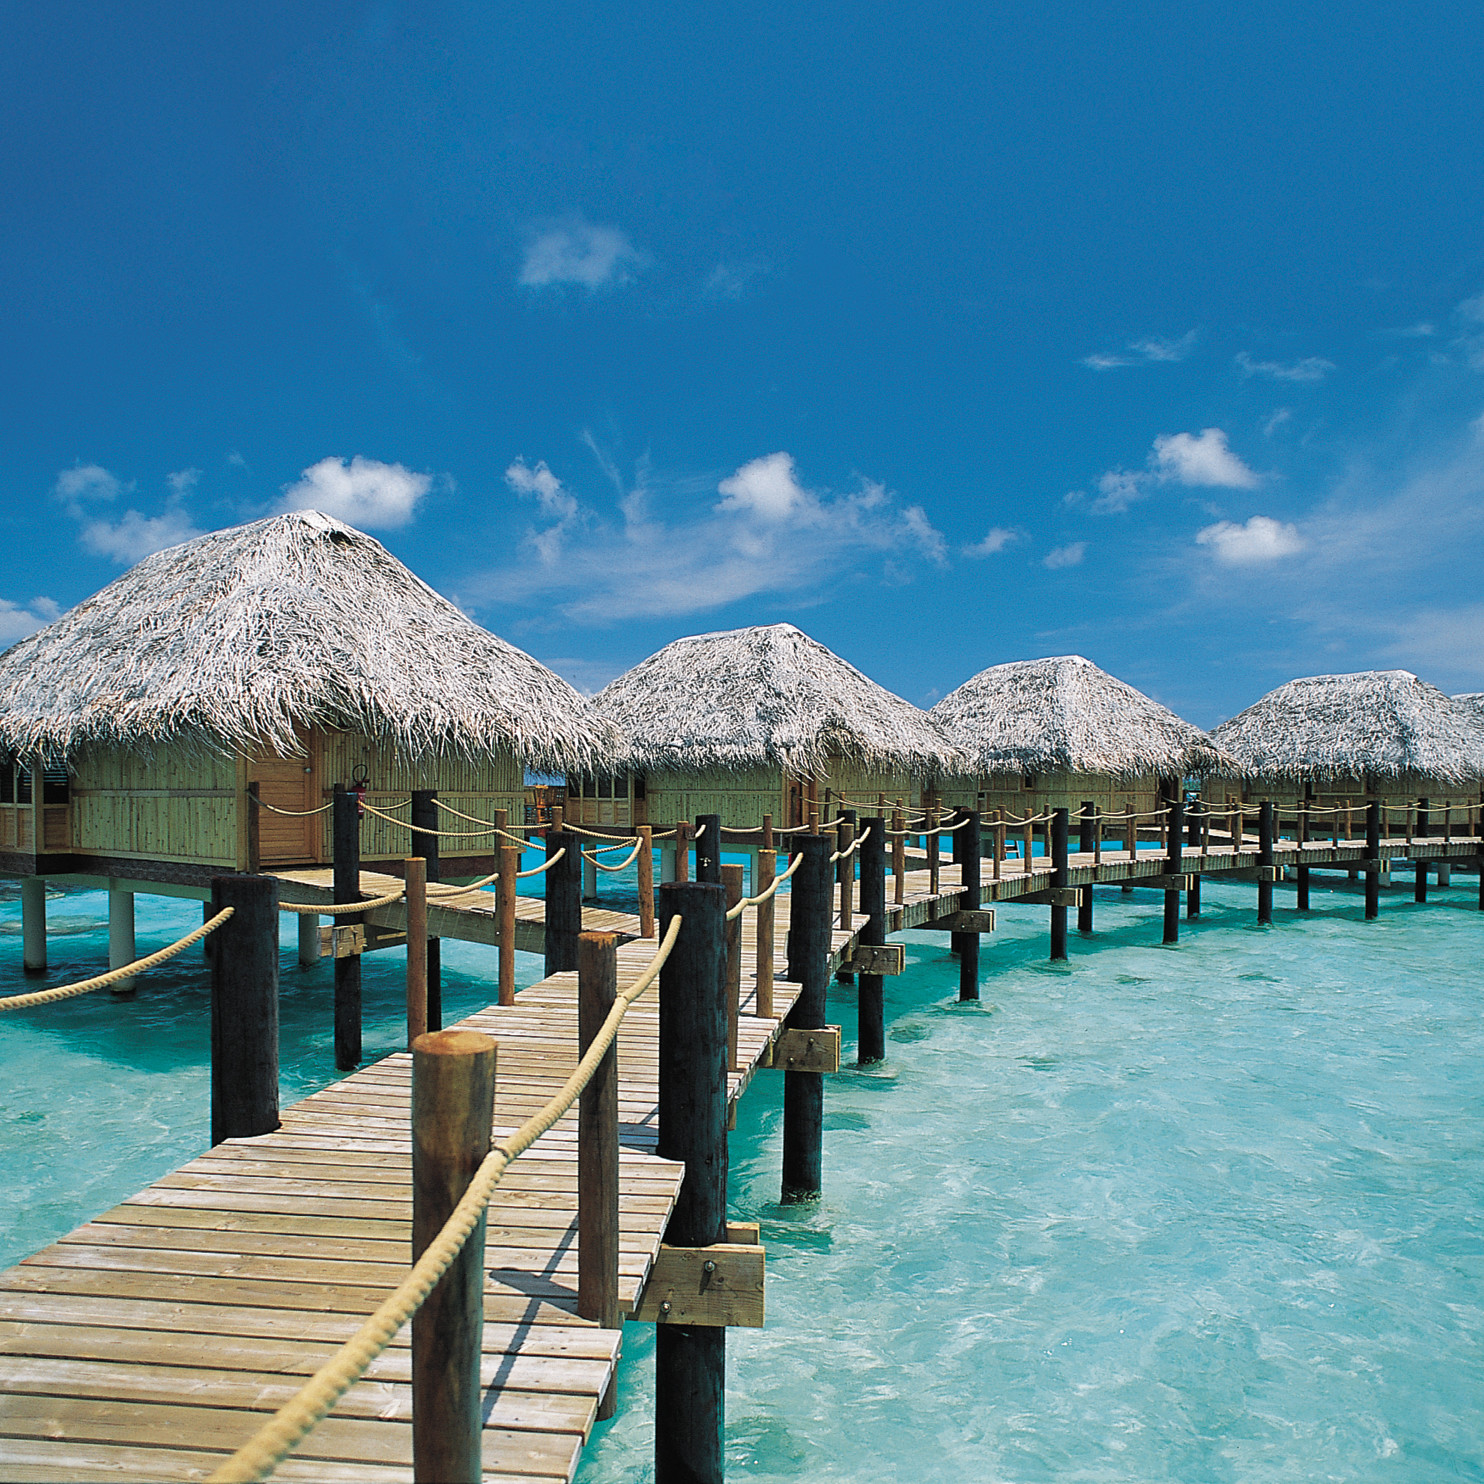 How To Pick An Overwater Bungalow Destination For Your